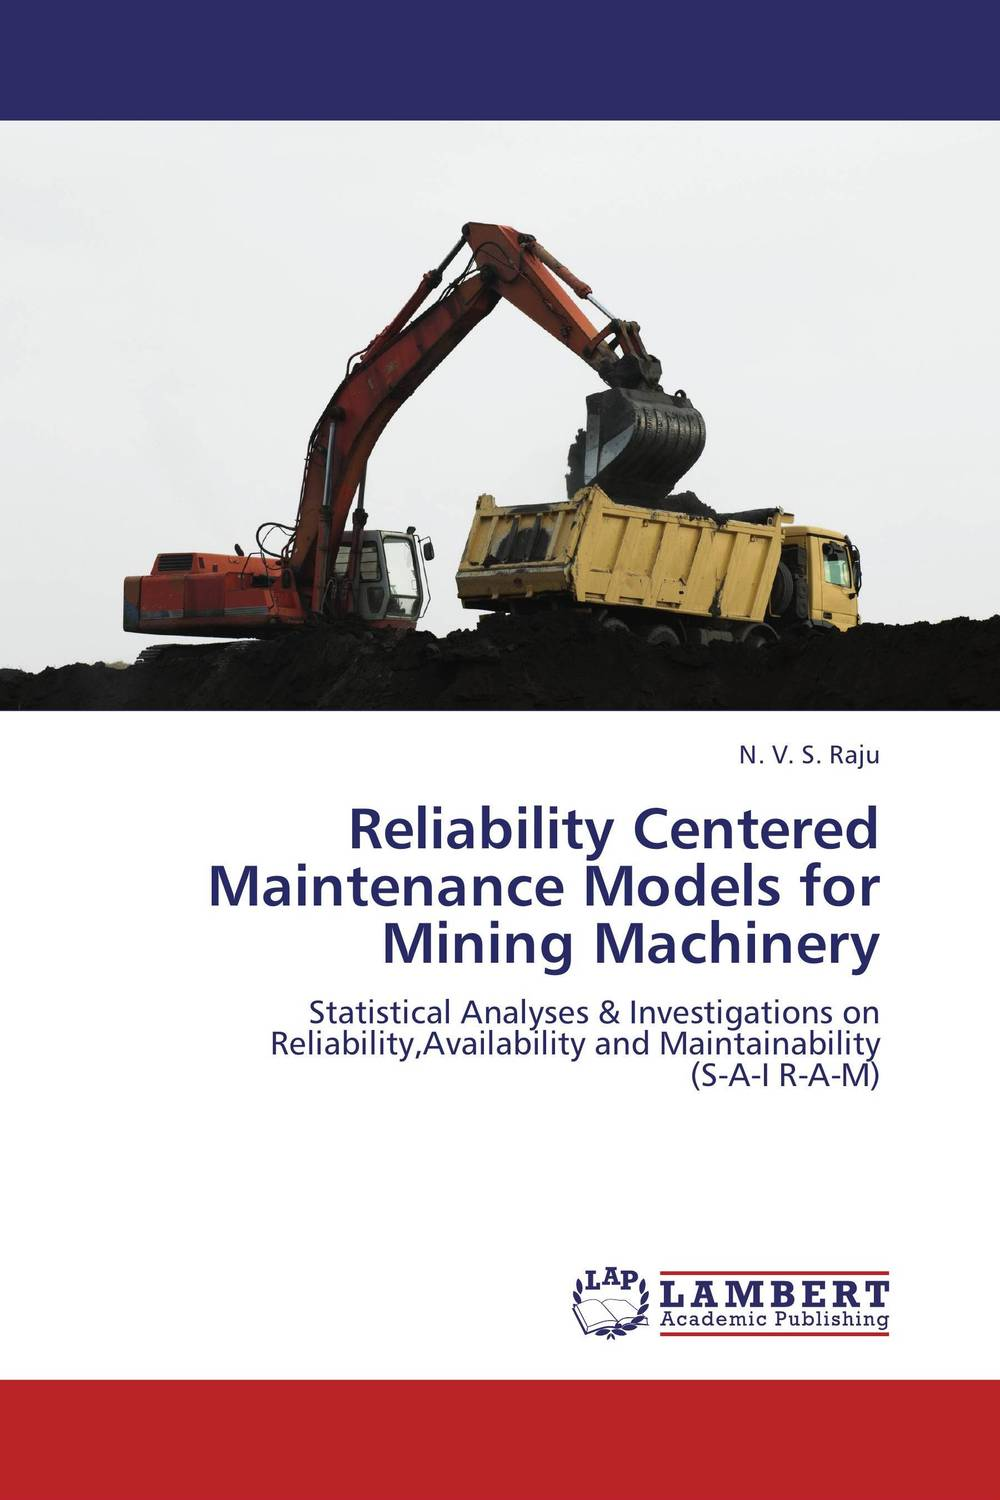 Reliability Centered Maintenance Models for Mining Machinery asmaa chouairi mohamed el ghorba and abdelkader benali reliability and maintenance analysis of complex industrial systems